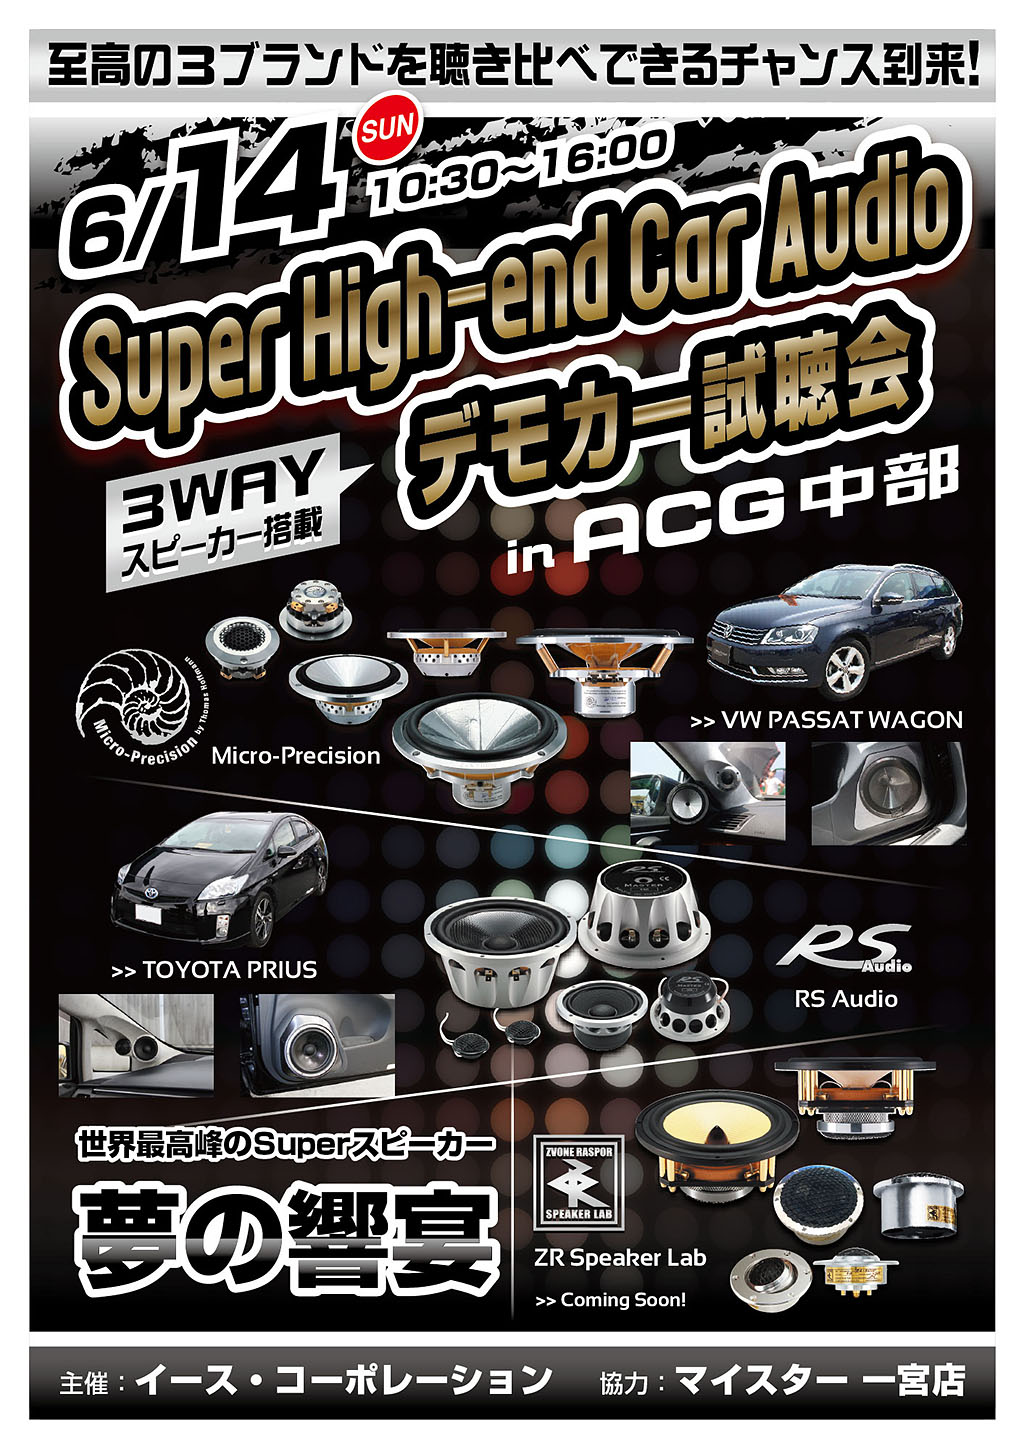 Super High-end Car Audio デモカー試聴会